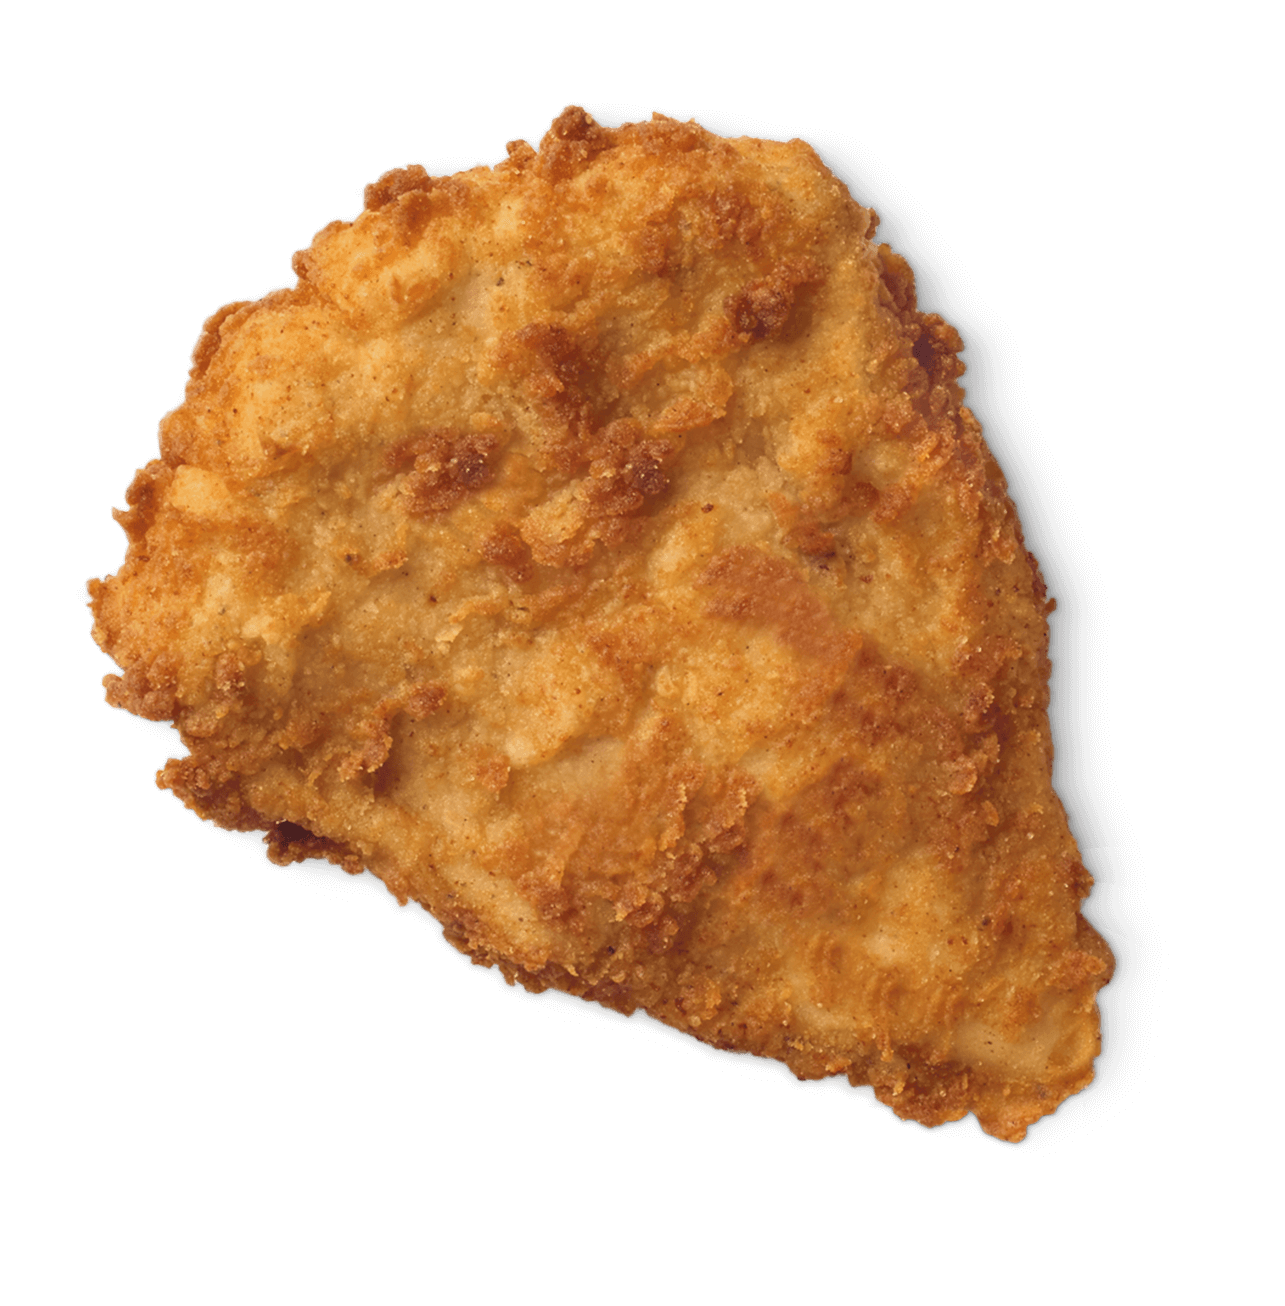 Fat clipart chicken nugget fry. Schnitzel png images free